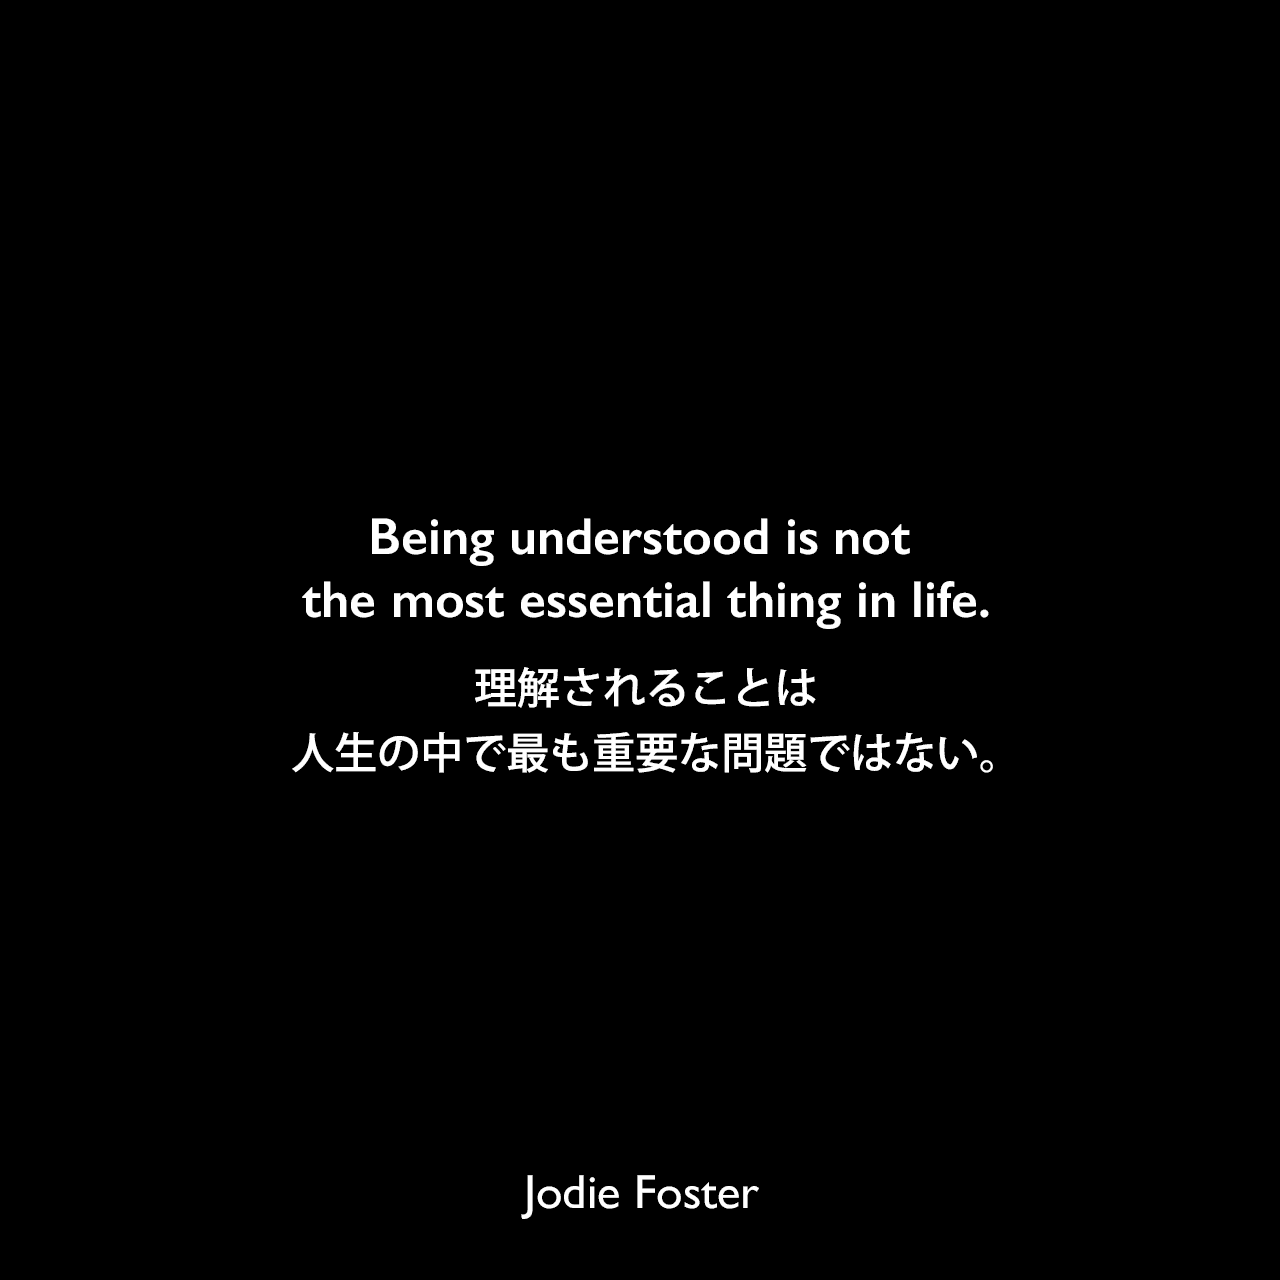 Being understood is not the most essential thing in life.理解されることは、人生の中で最も重要な問題ではない。Jodie Foster